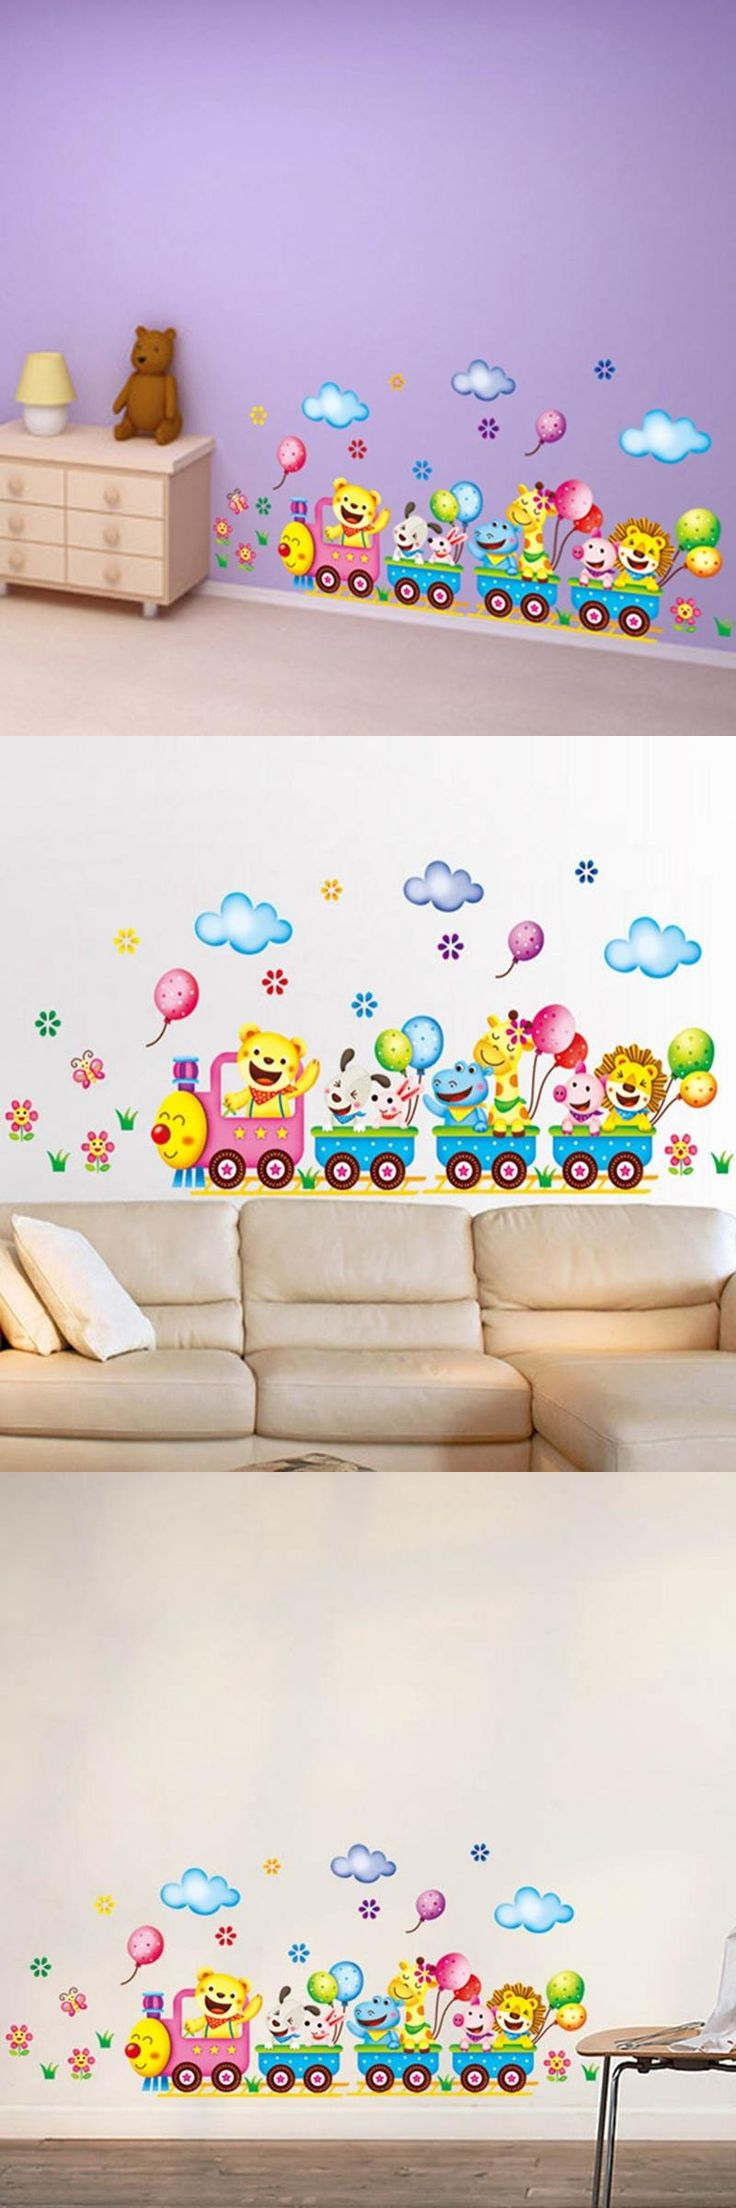 Best 25 small wall stickers ideas on pinterest wall decor xy3013 free shipping small adhesive wall stickers vinyl cute animals train wall tattoos for baby amipublicfo Gallery